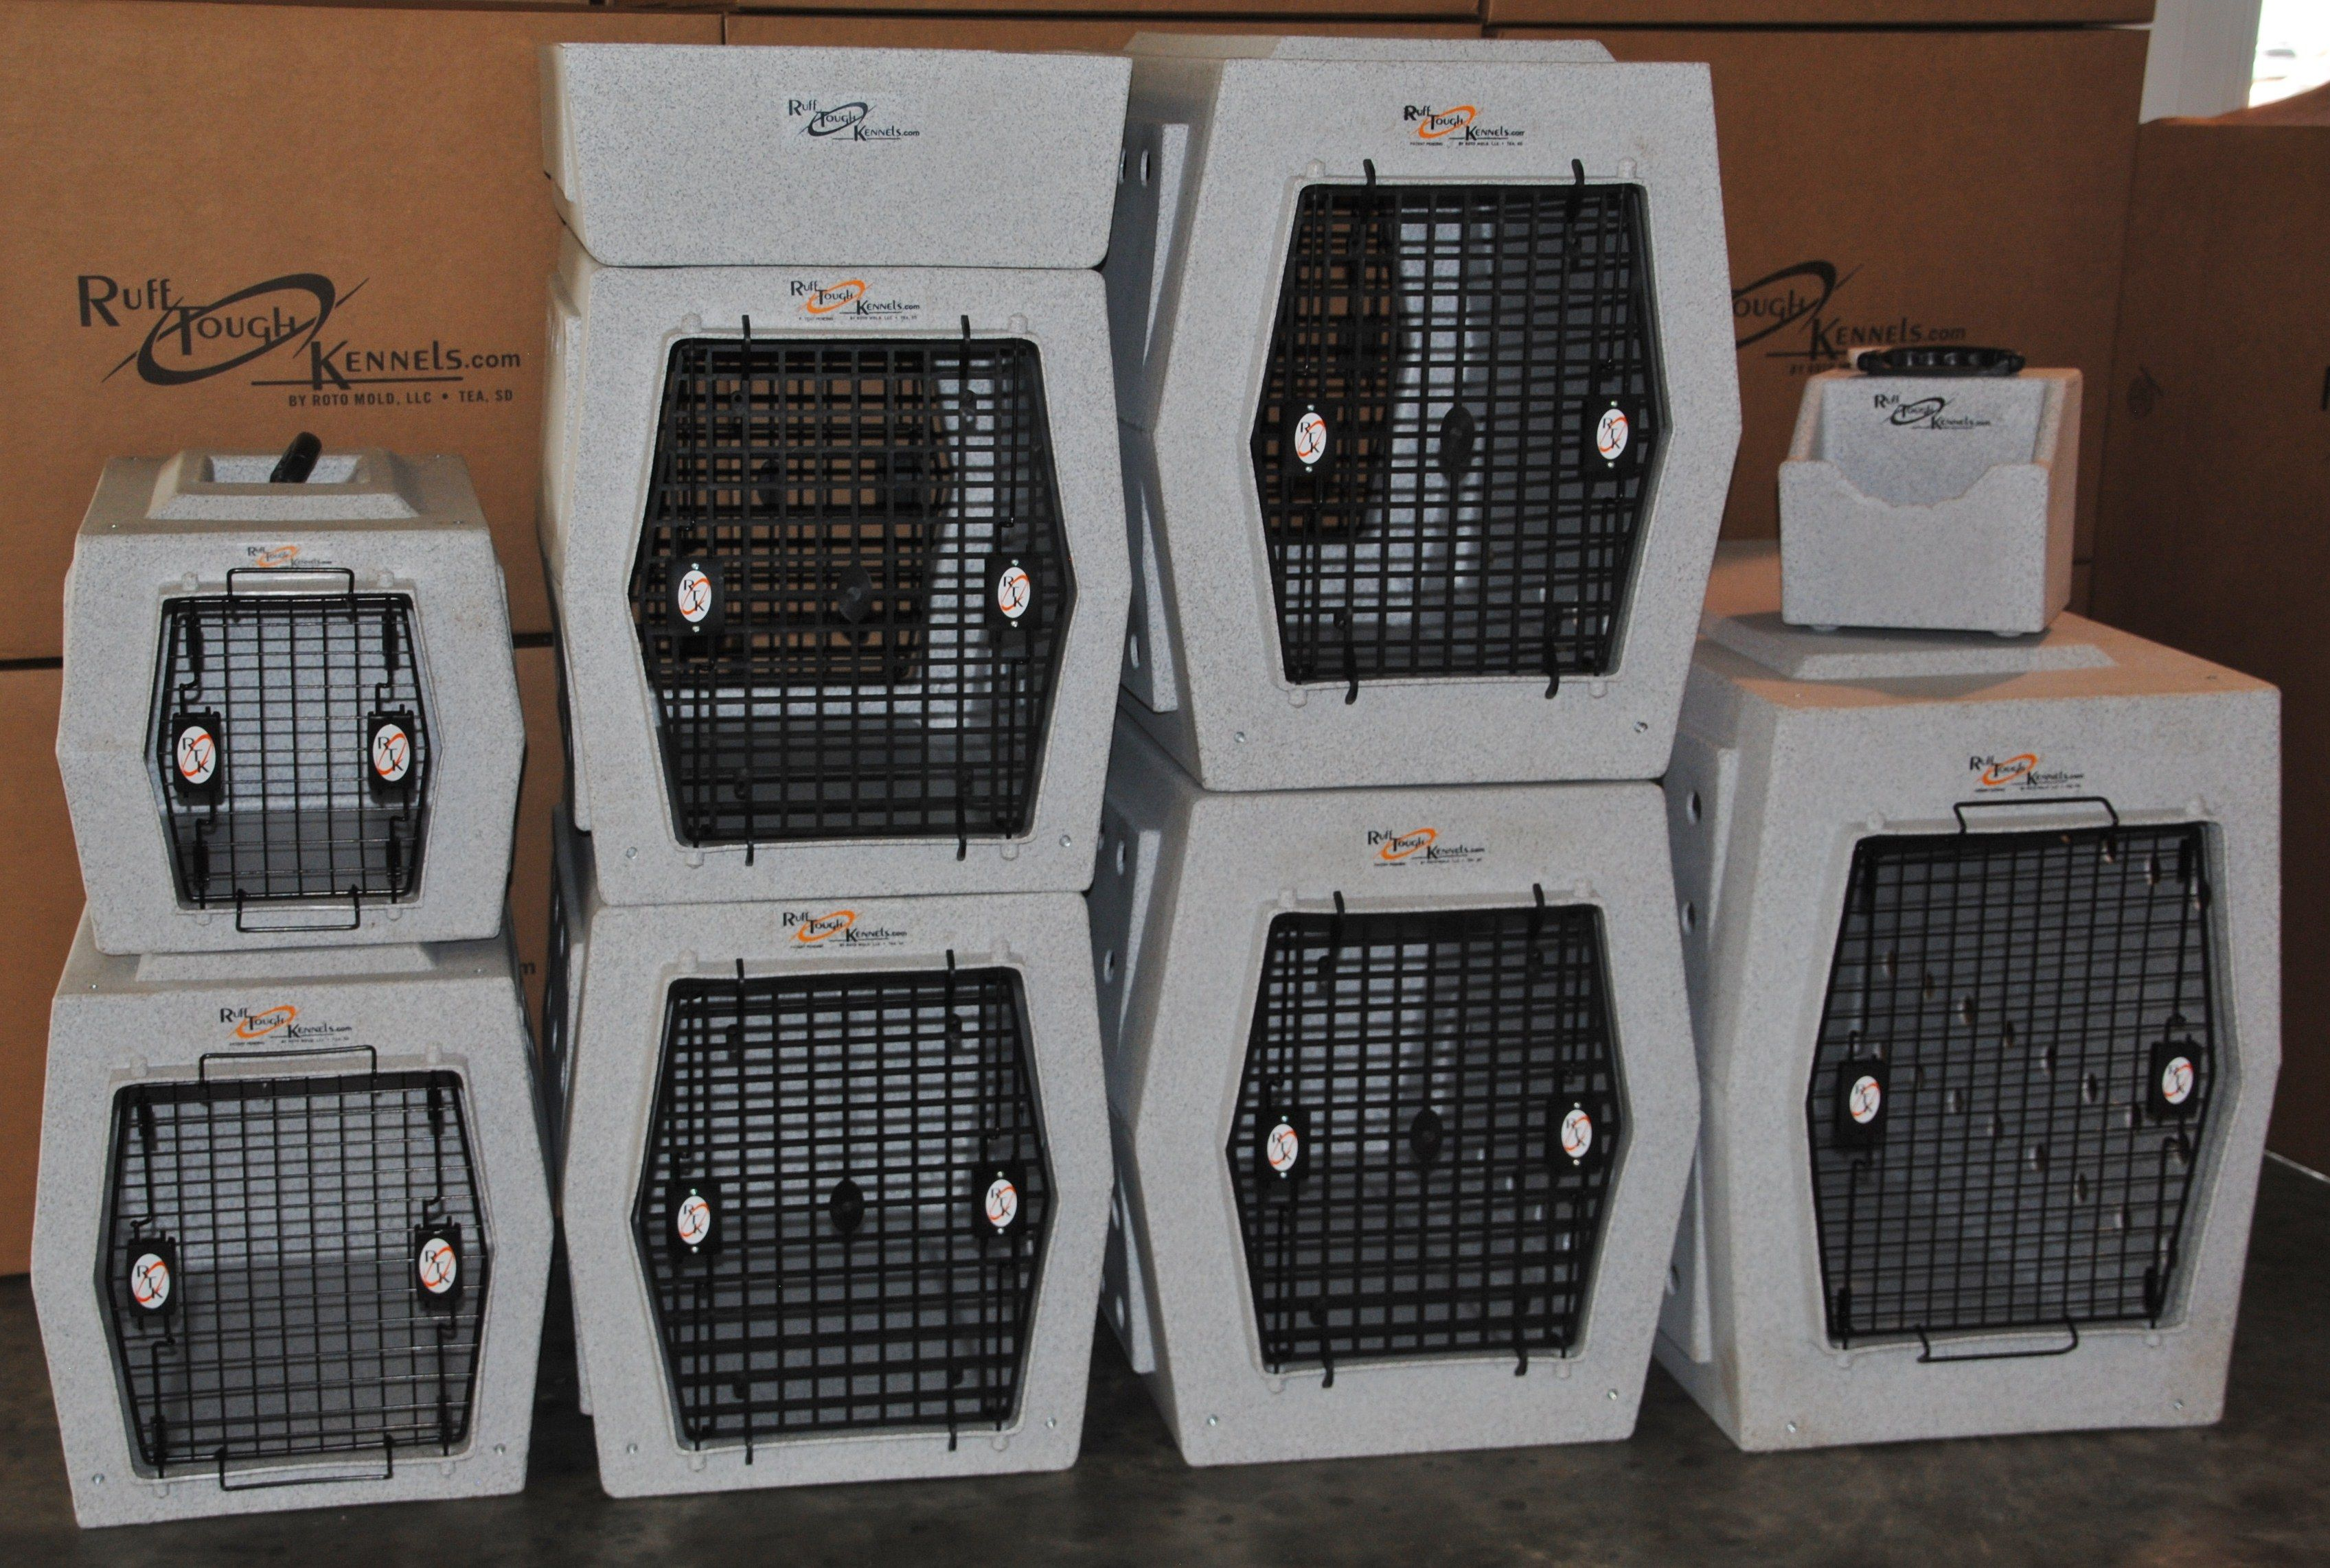 Ruff Tough Kennels >> Ruff Tough Kennels Dog Crate Product Line Dog Show Dog